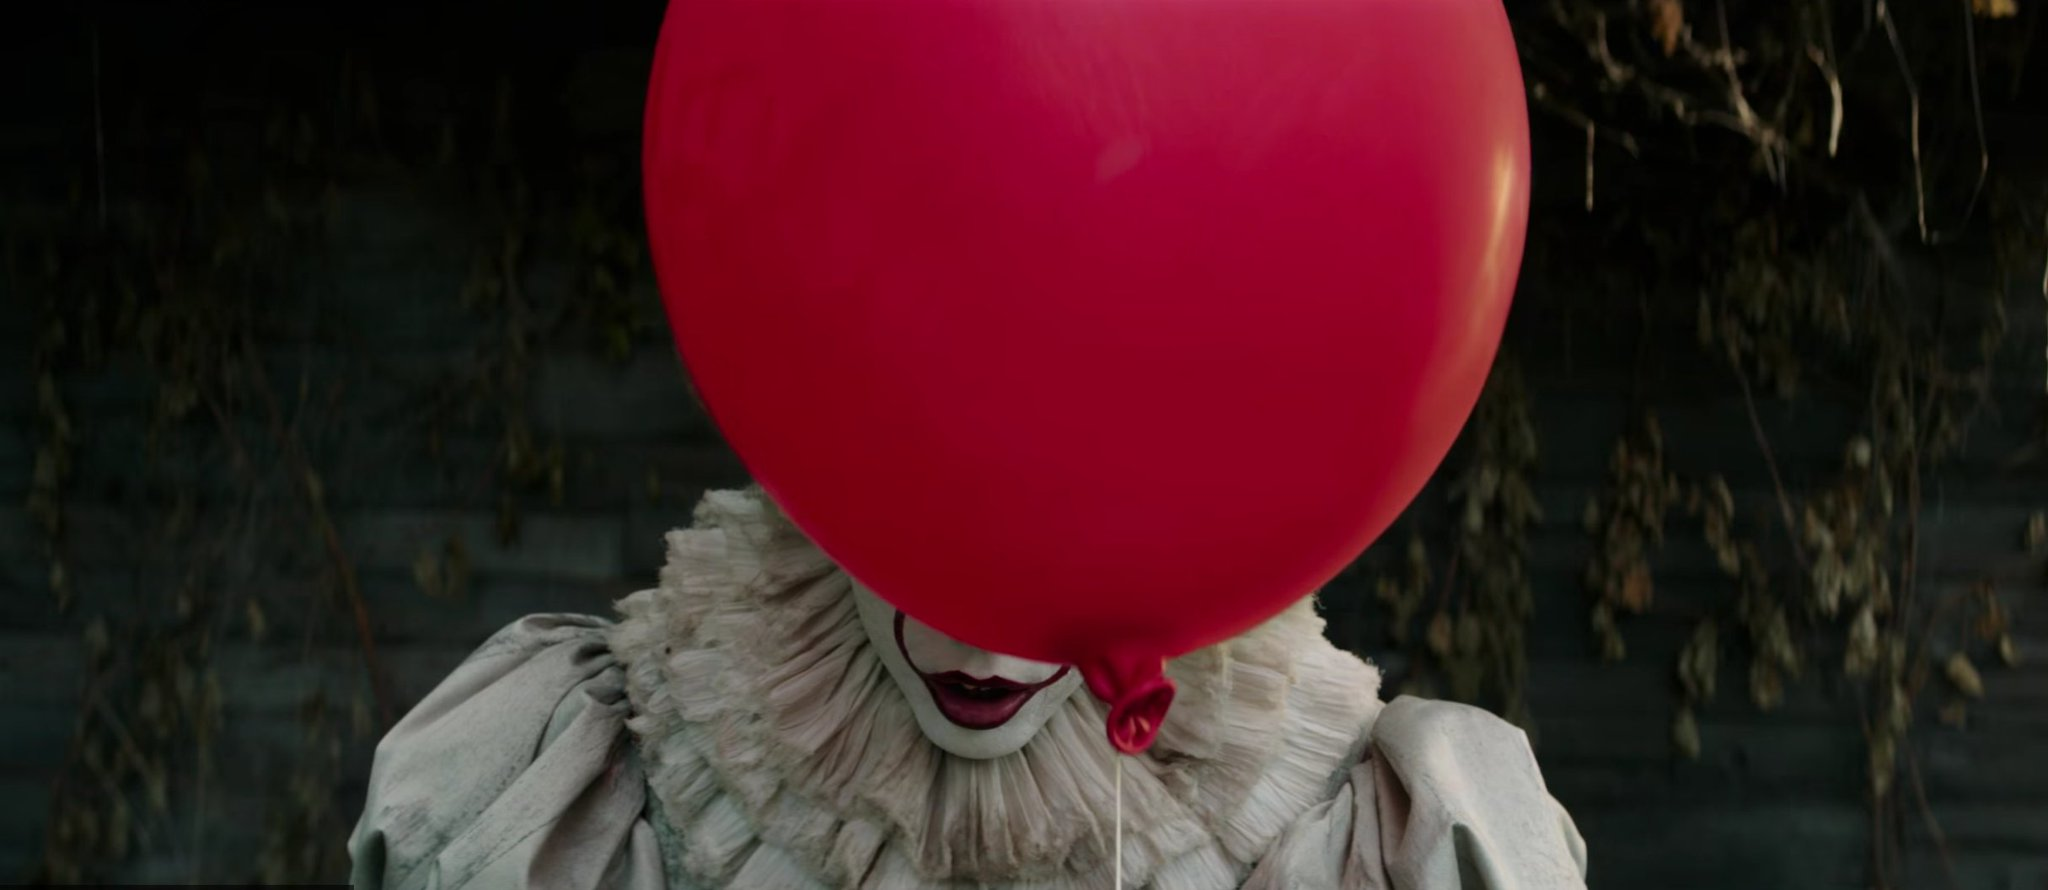 Watch the first terrifying trailer for Stephen King's #ITMovie https://t.co/k5siAzfbwa https://t.co/QIYvDIfY3x